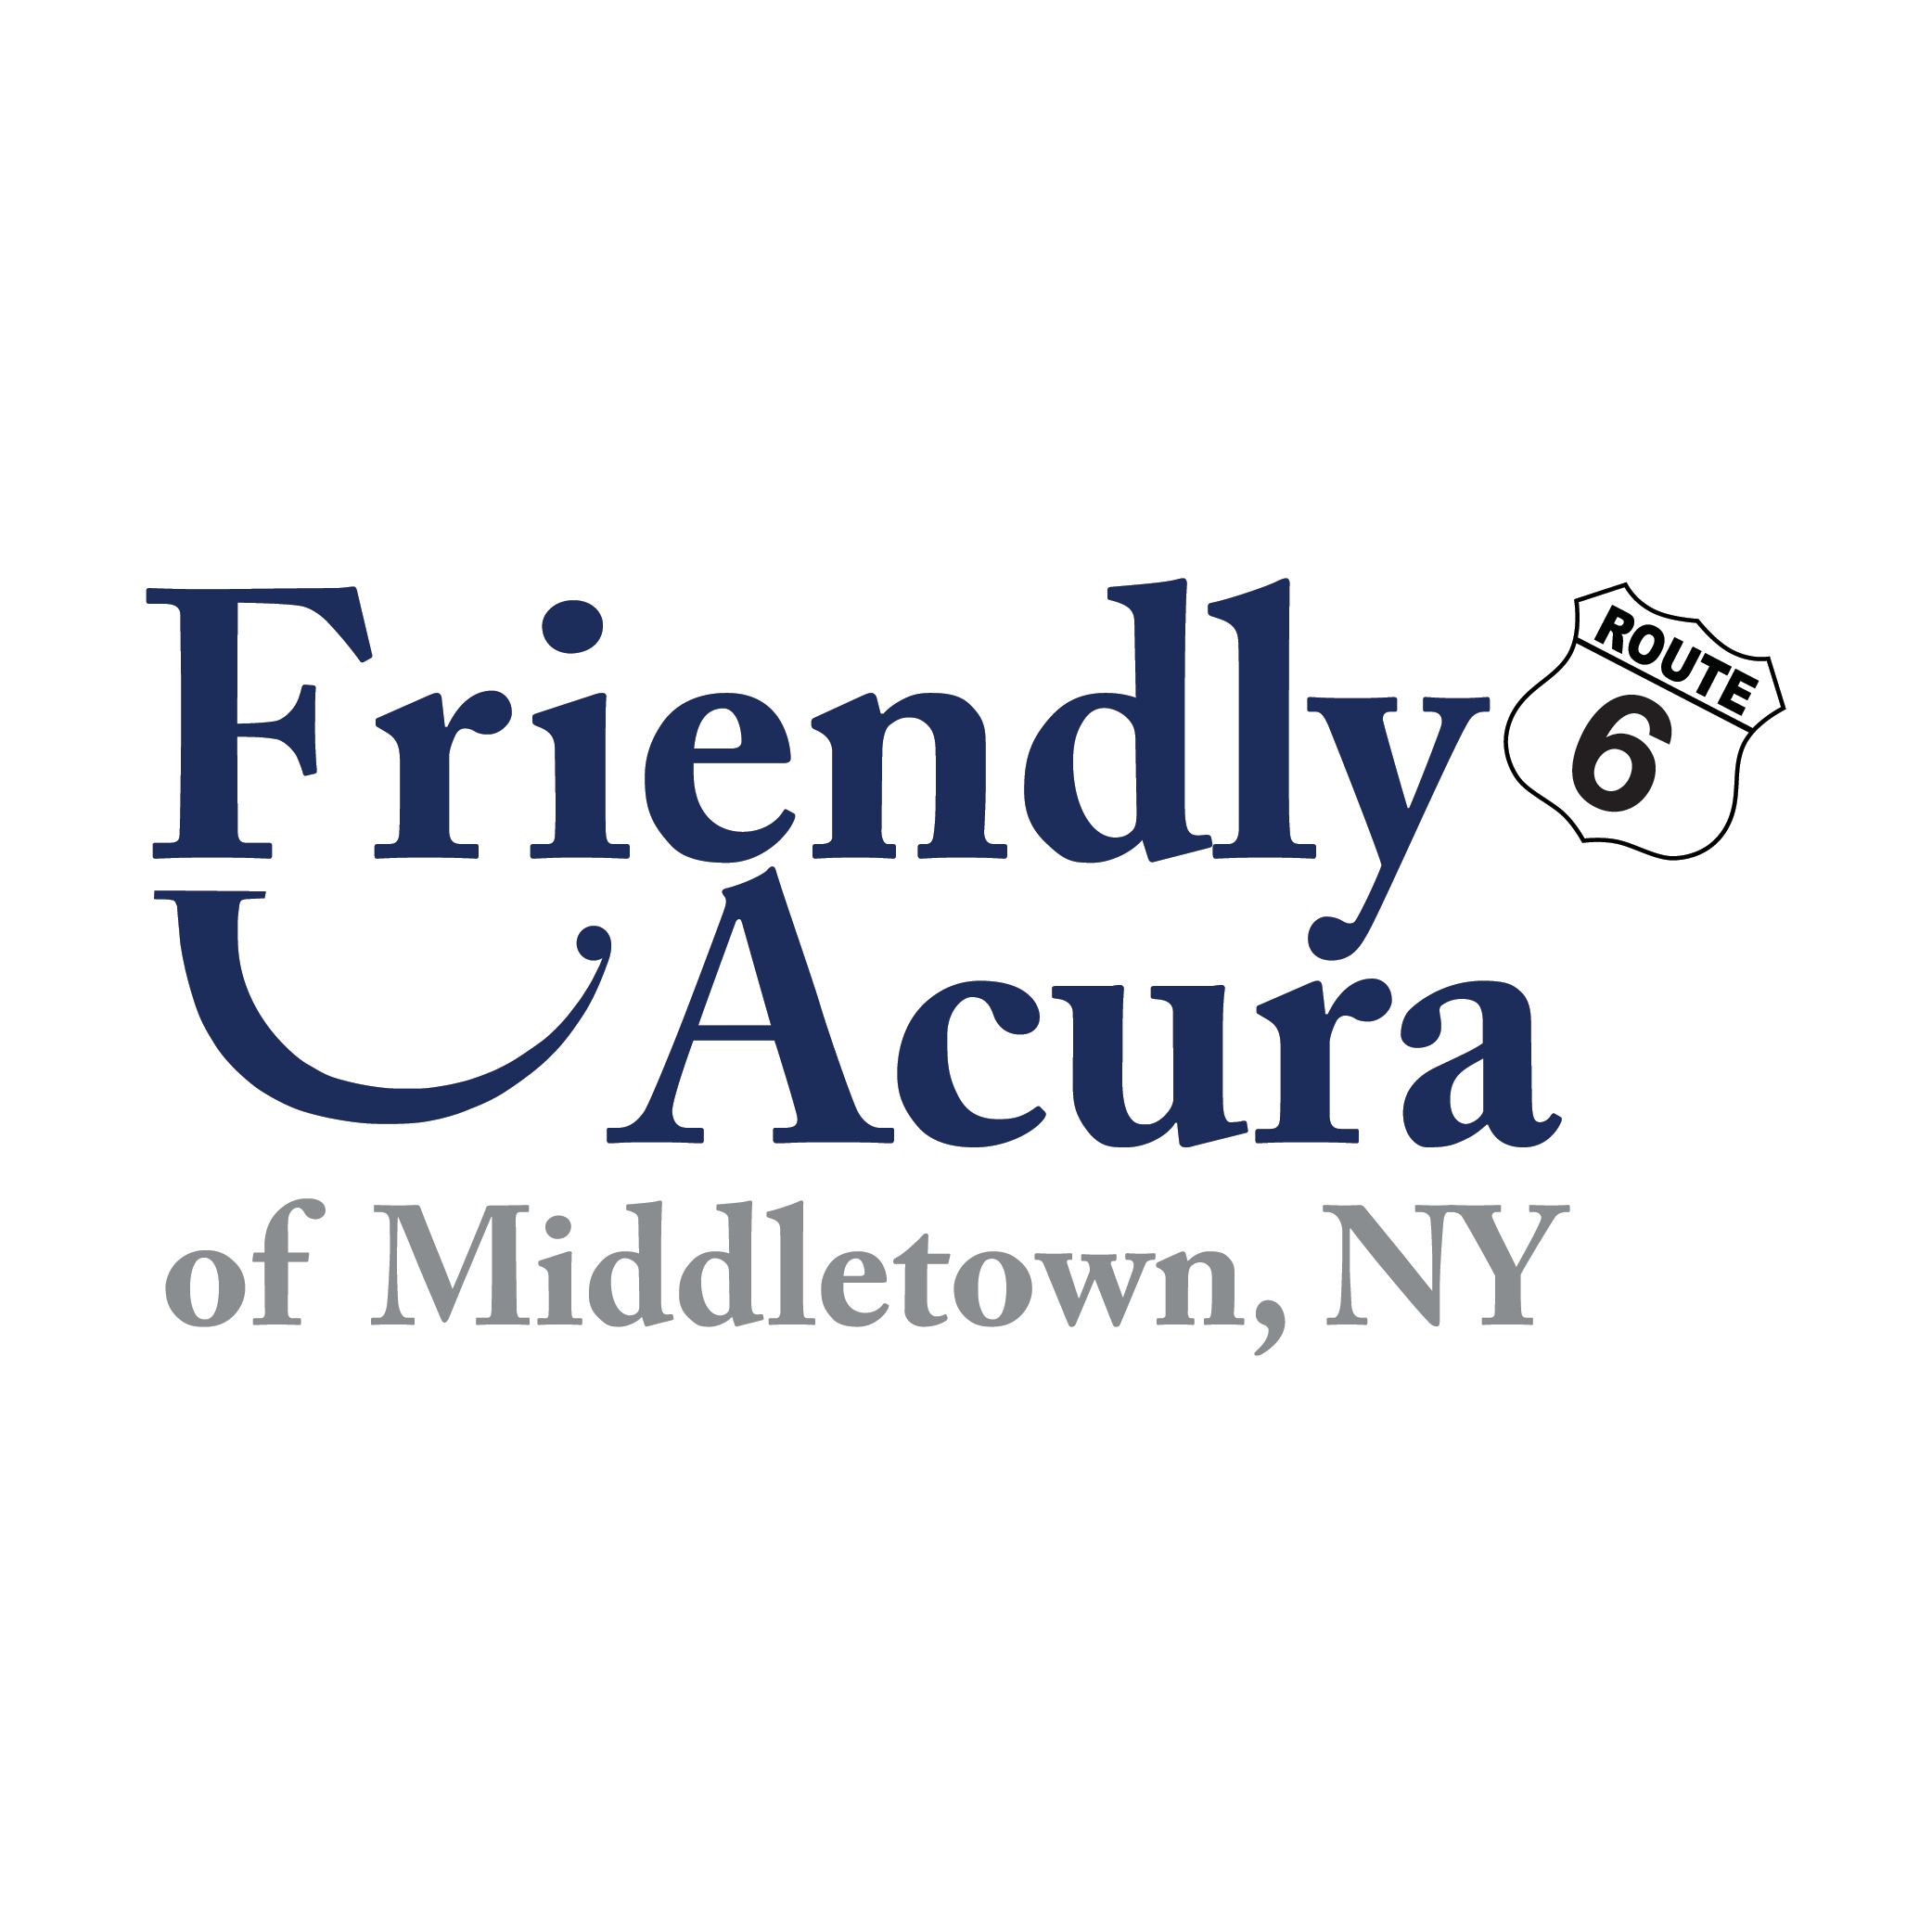 Friendly Acura of Middletown image 1